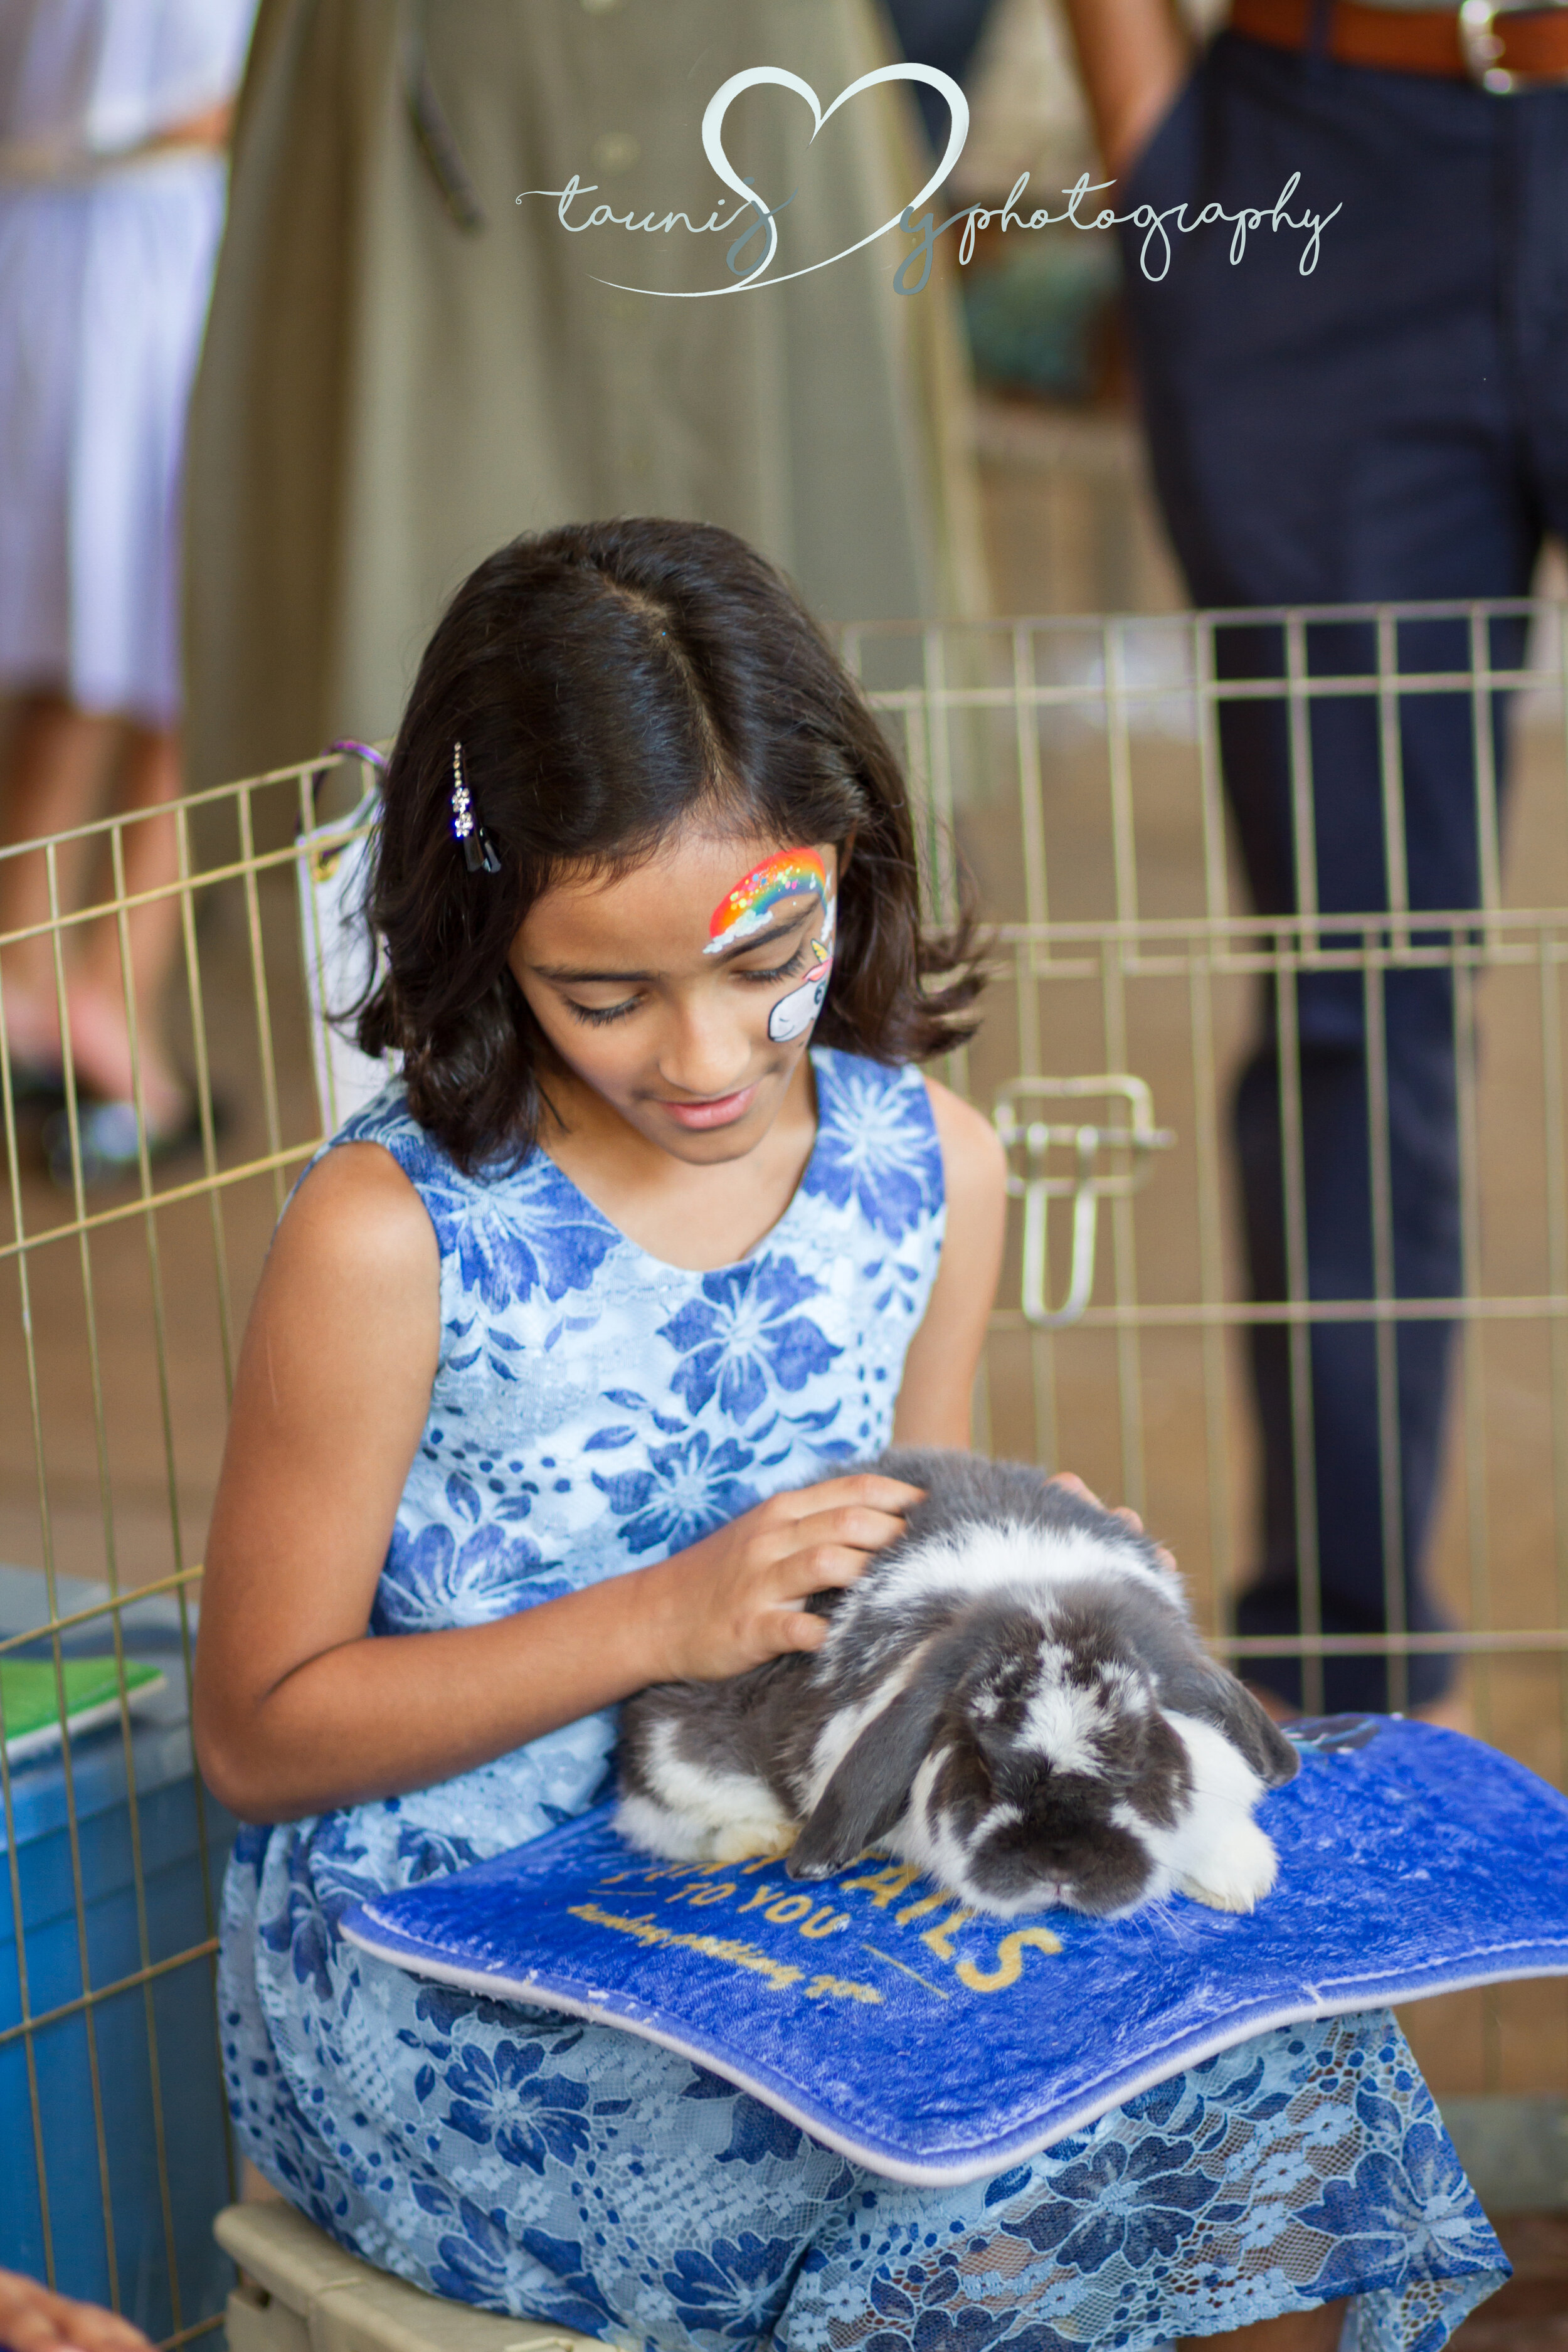 petting zoo - I love petting zoos! So stinking cute! Tiny tails to you is adorable!